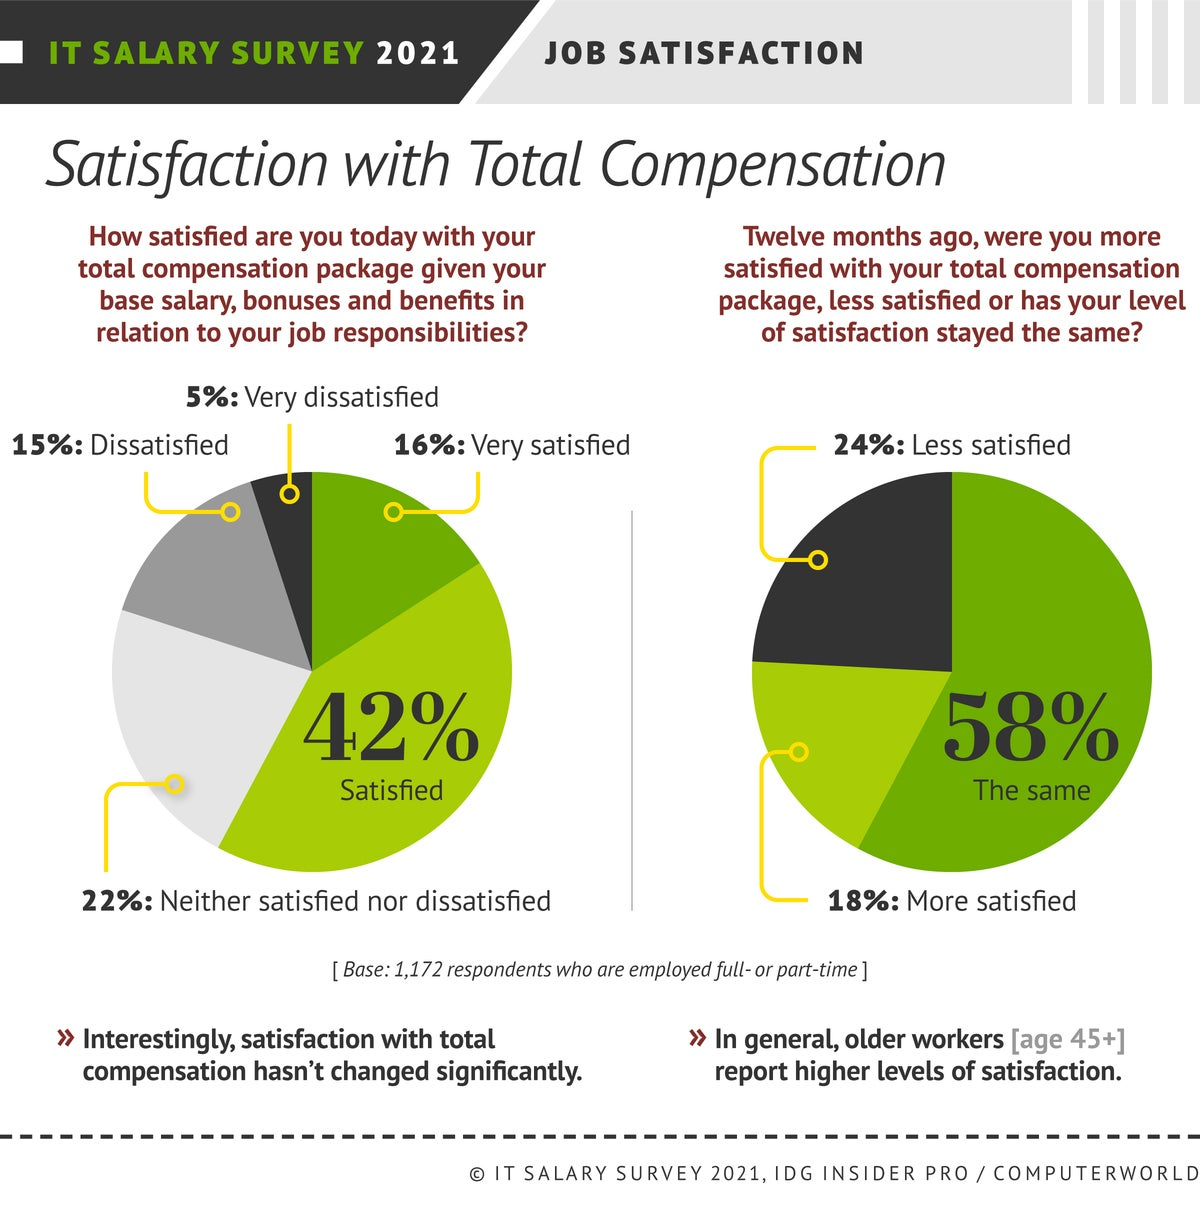 Insider Pro | Computerworld  >  IT Salary Survey 2021  >  Satisfaction with Total Compensation